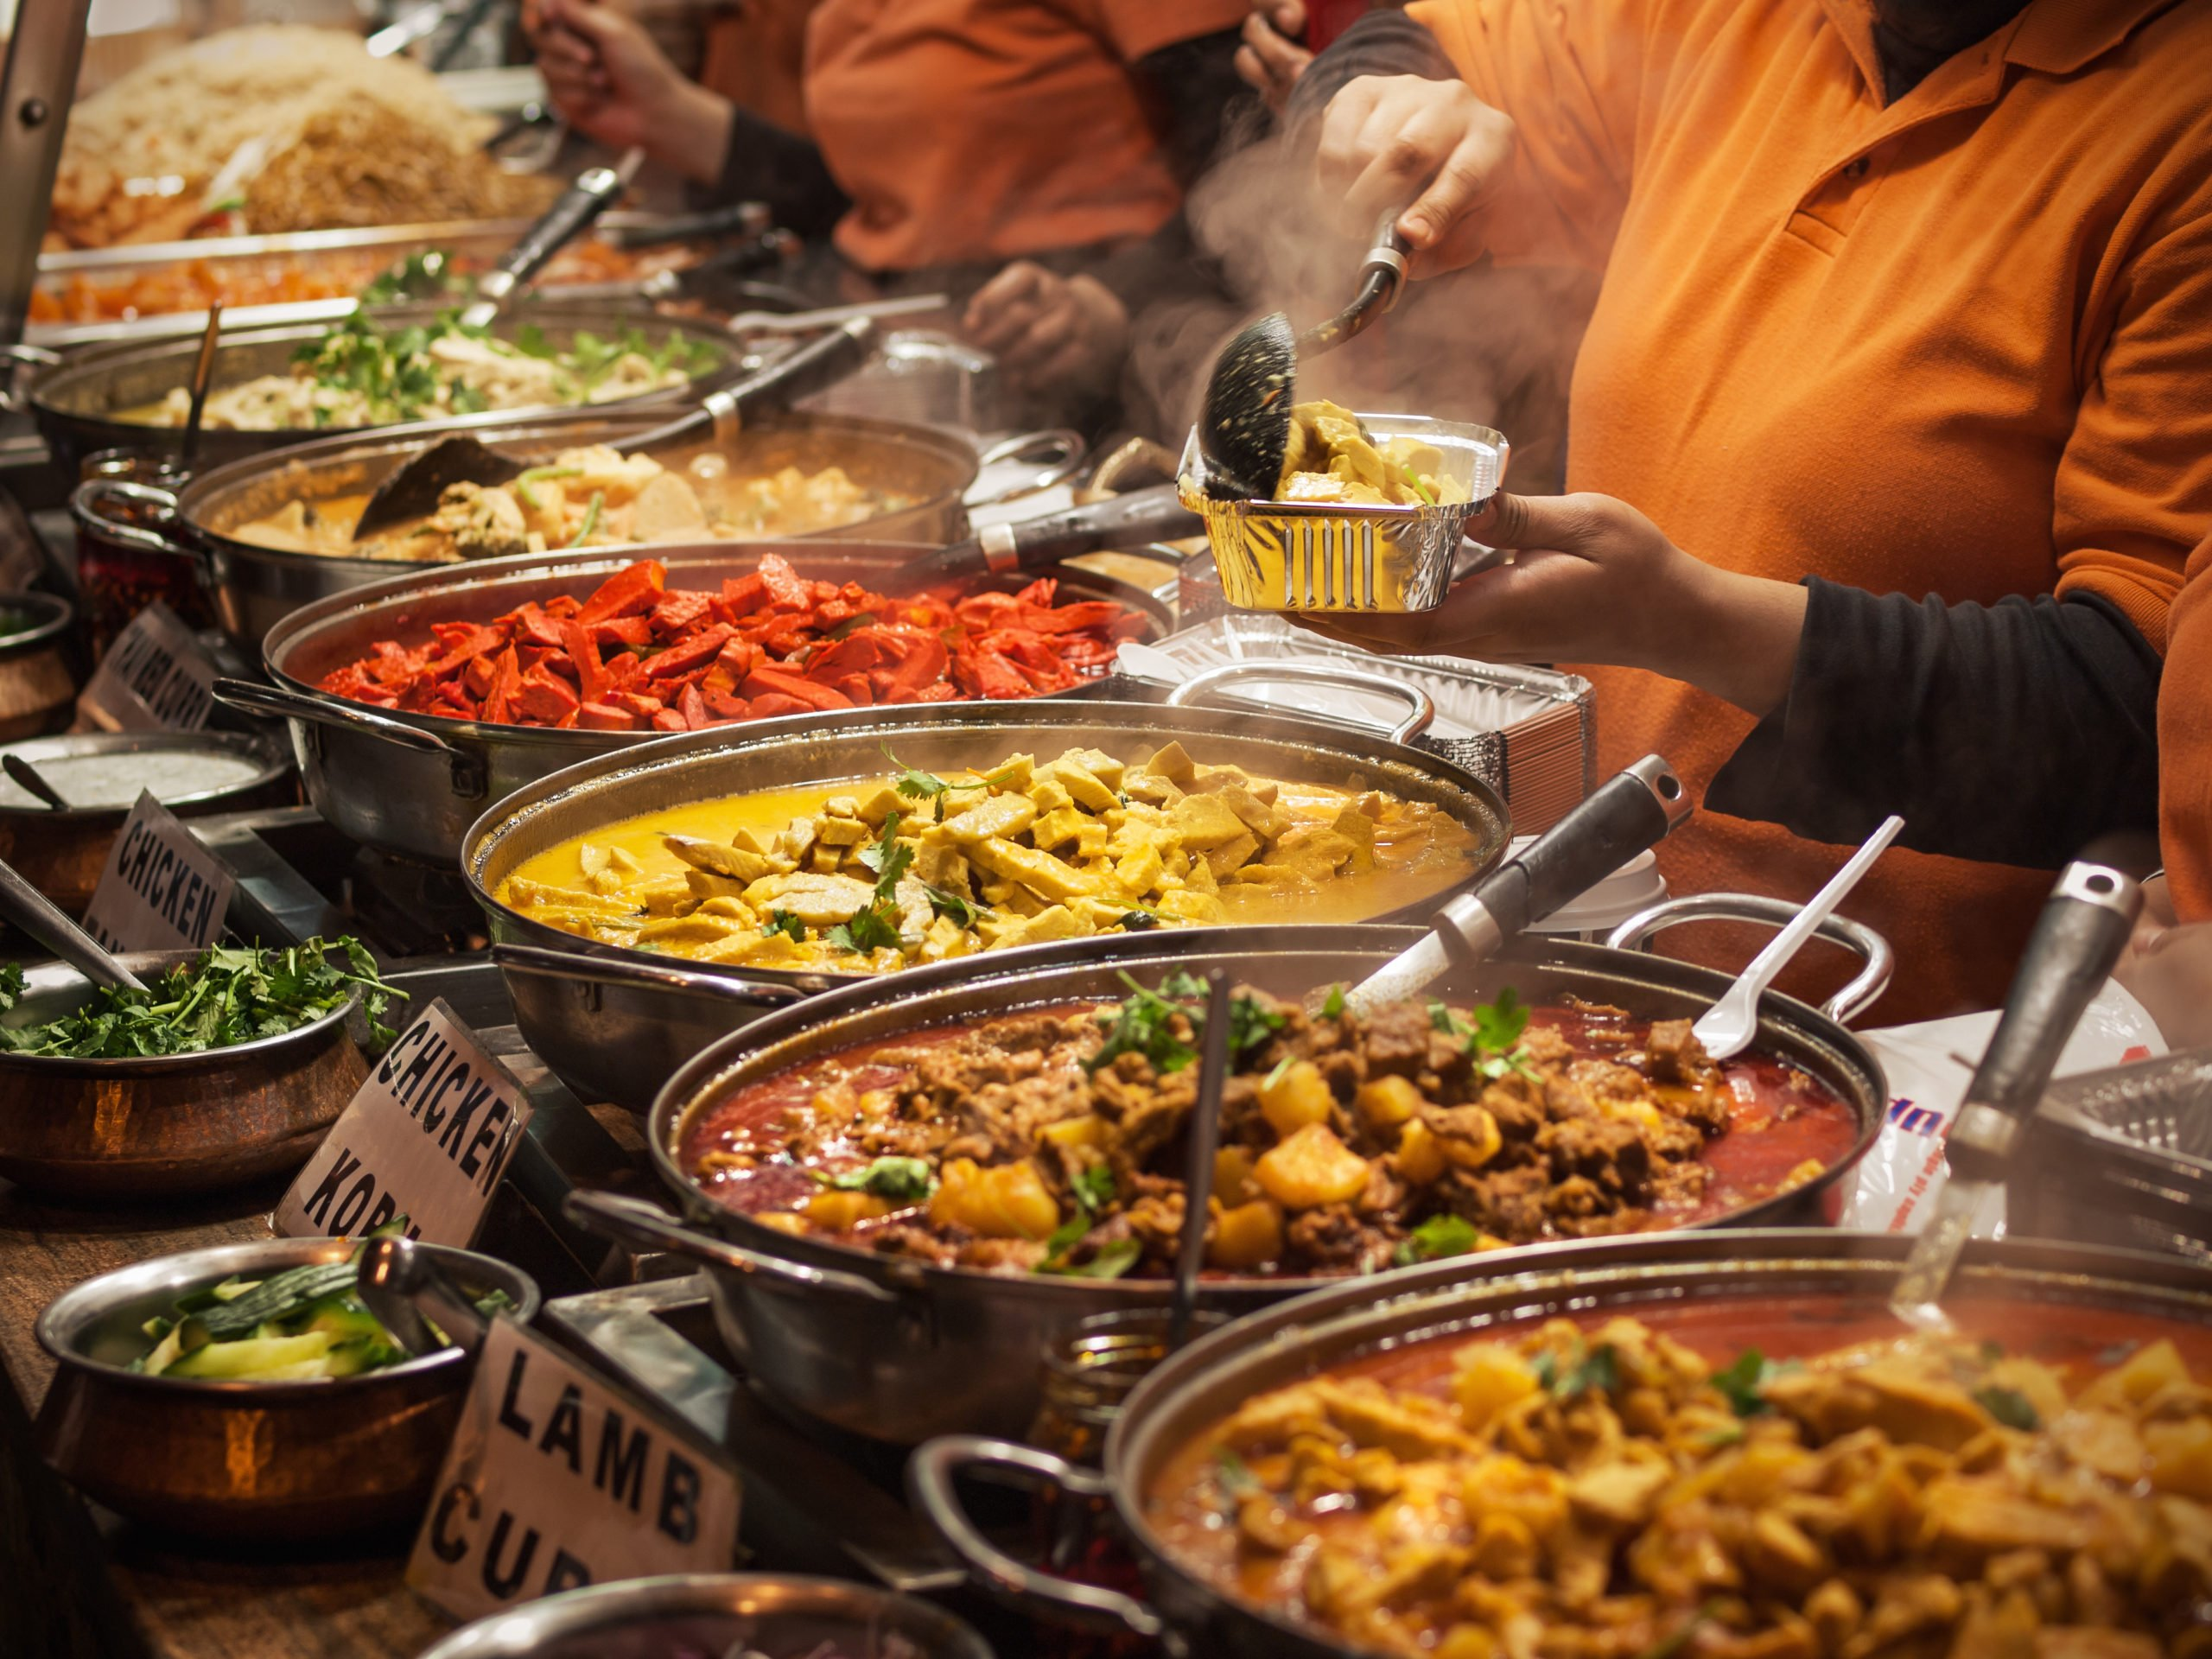 Learn How To Prepre Traditional Indian Meals On Our South India Cooking Class In Chennai